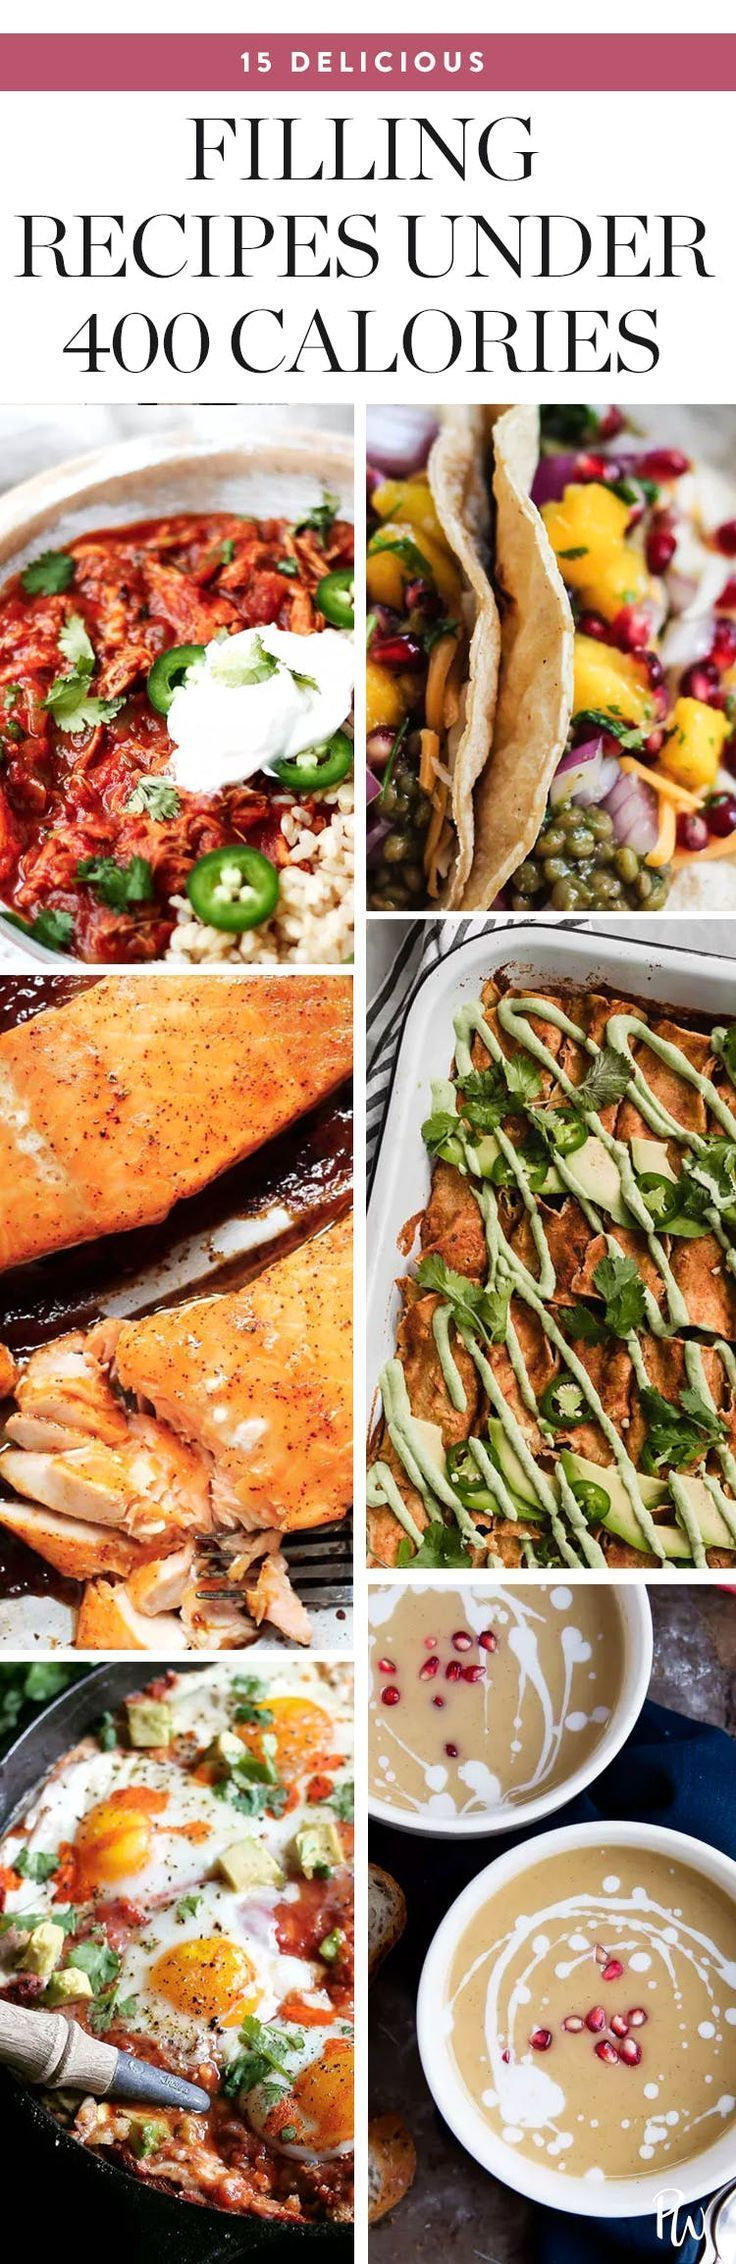 15 Delicious and Filling Recipes That Are Under 400 Calories #400caloriemeals 15 Delicious and Filling Recipes That Are Under 400 Calories #400caloriemeals